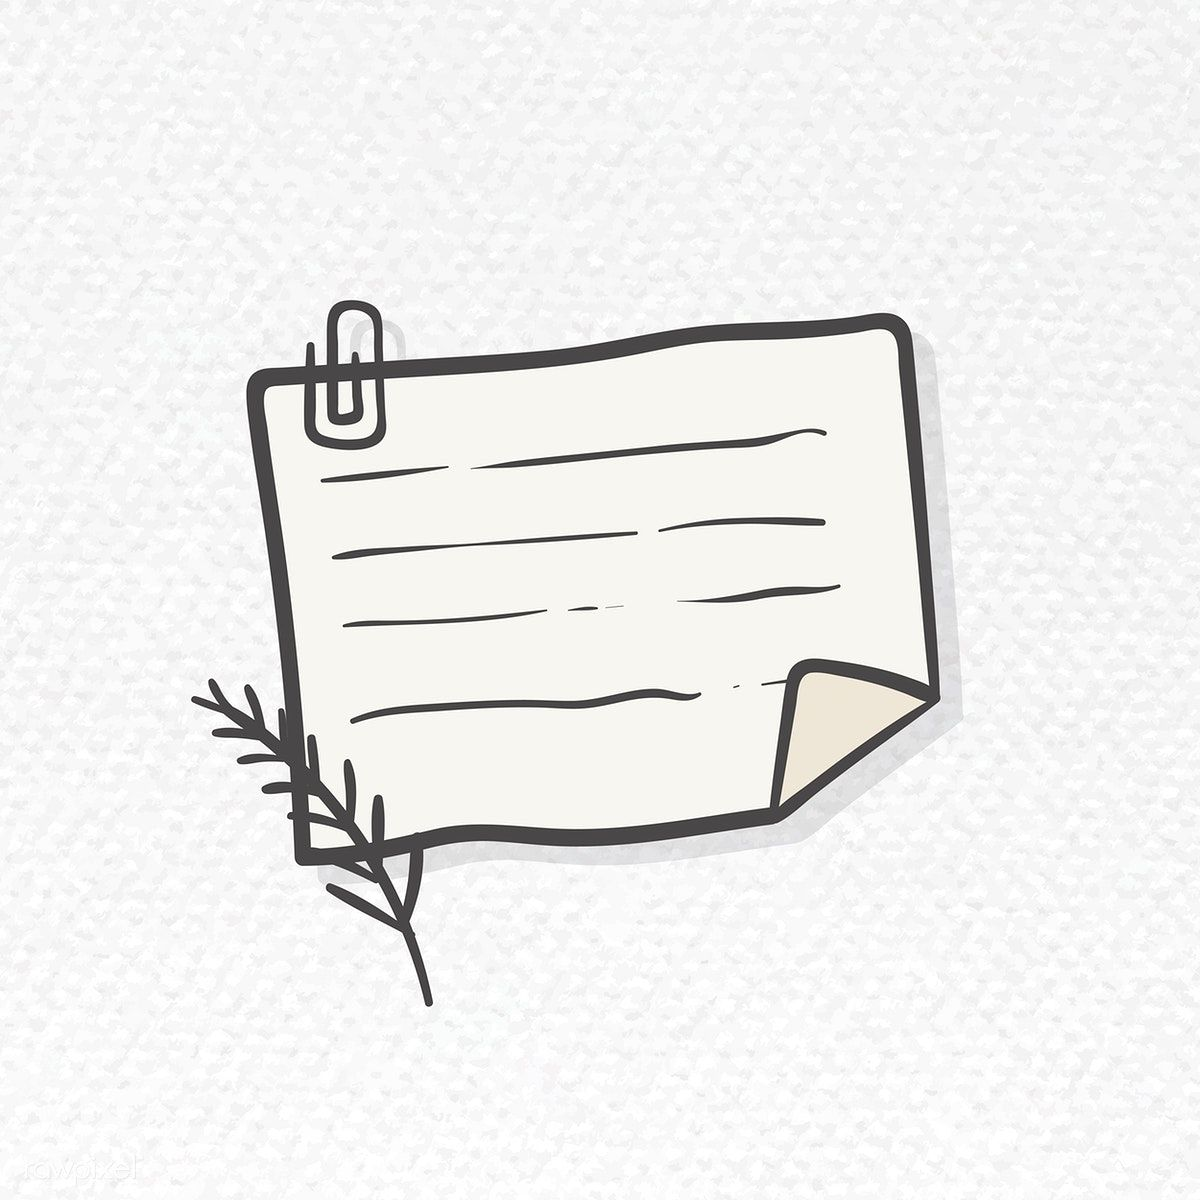 Blank Lined Paper Note With Paper Clip Vector Free Image By Rawpixel Com Chayanit Vector Vectorart Digitalpai Note Paper Paper Illustration Lined Paper